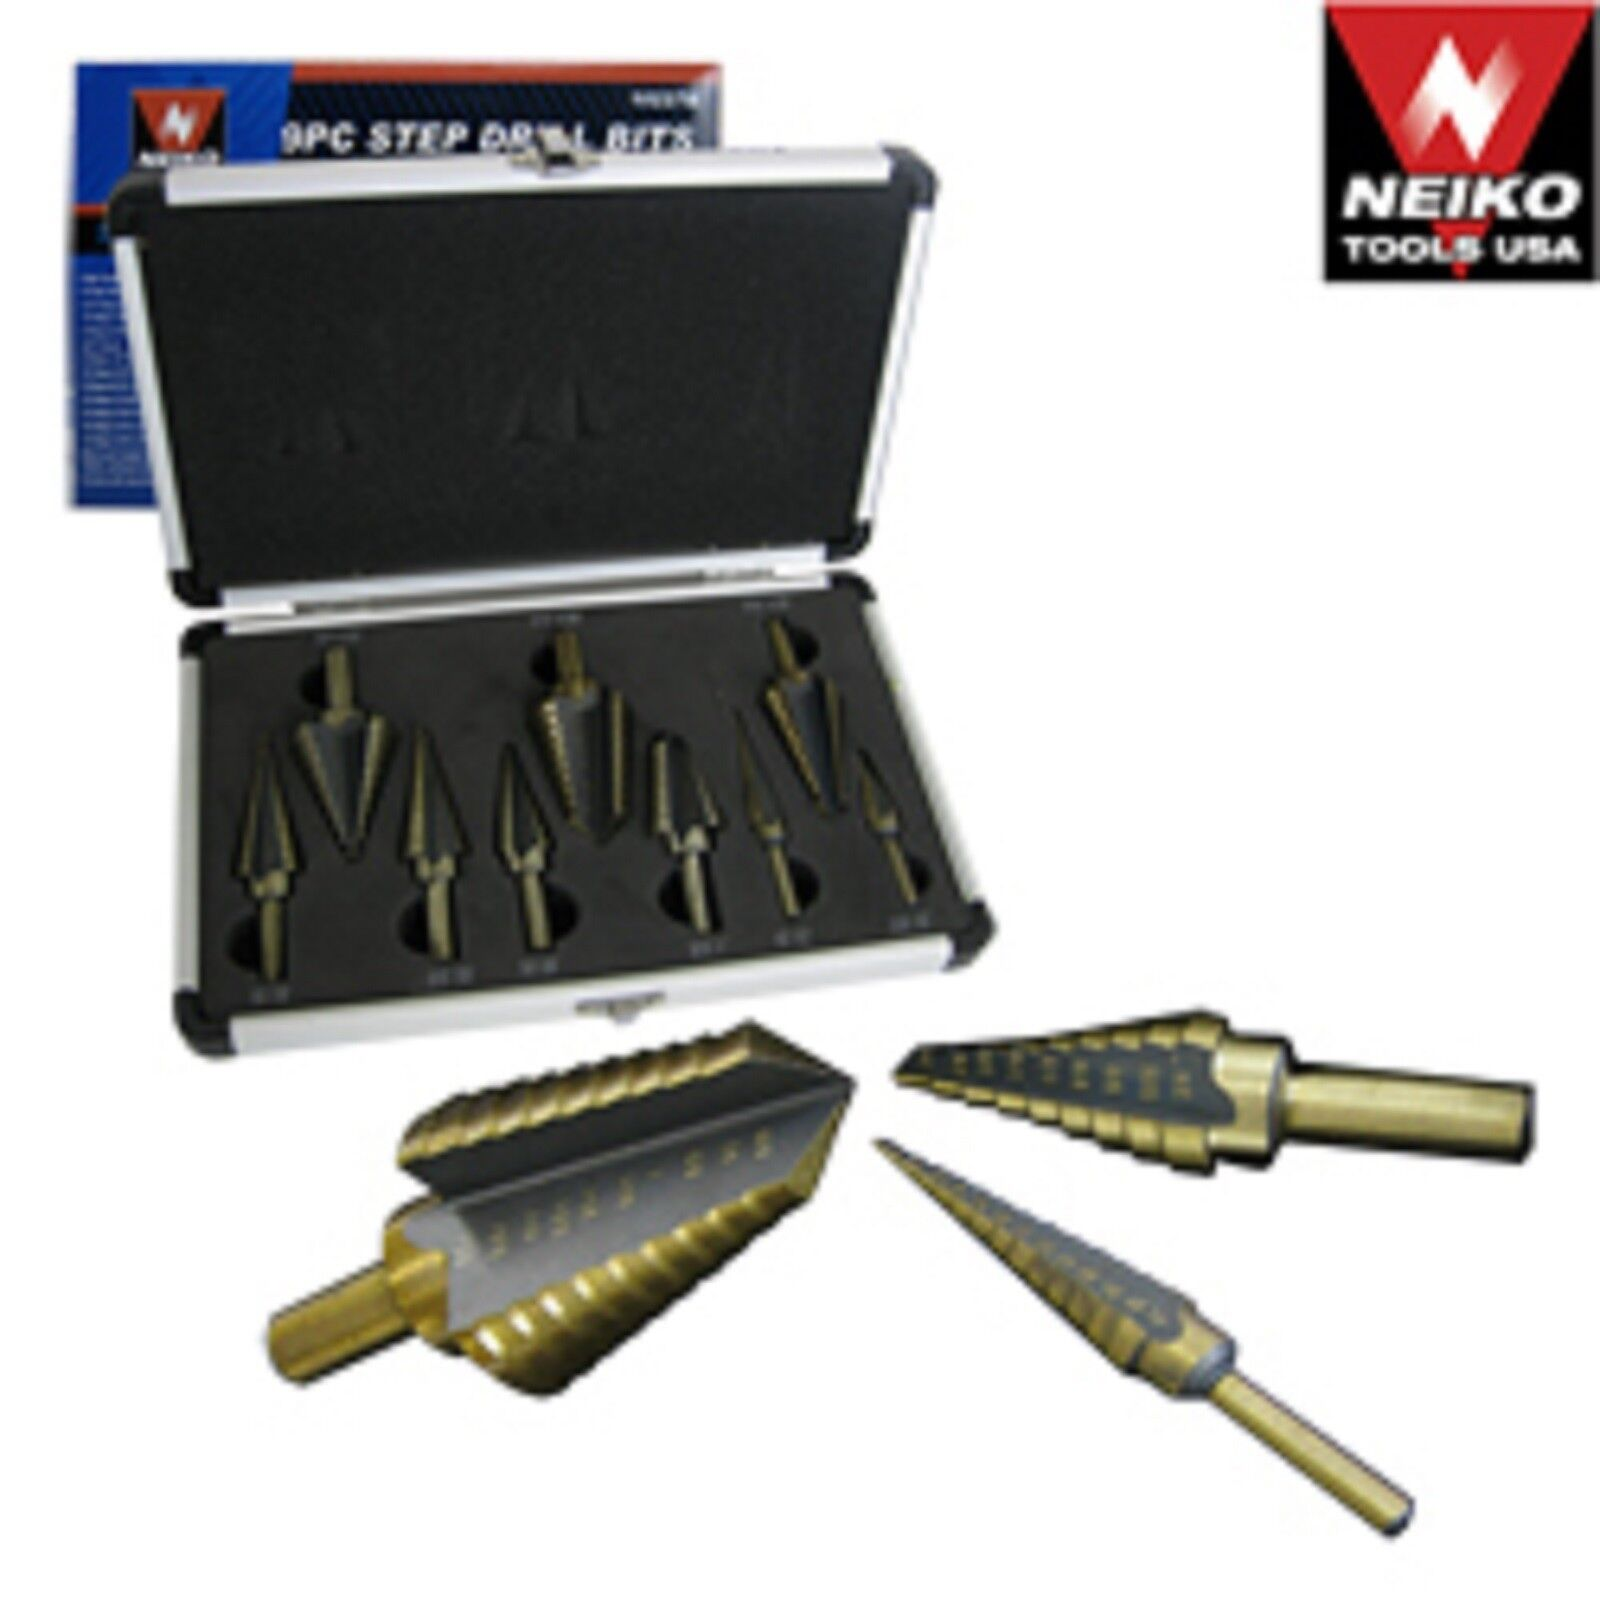 LARGE SELECTION STEP STEPPED DOWN VARIABLE Größe STEEL DRILL BIT UNIBIT TOOL SET